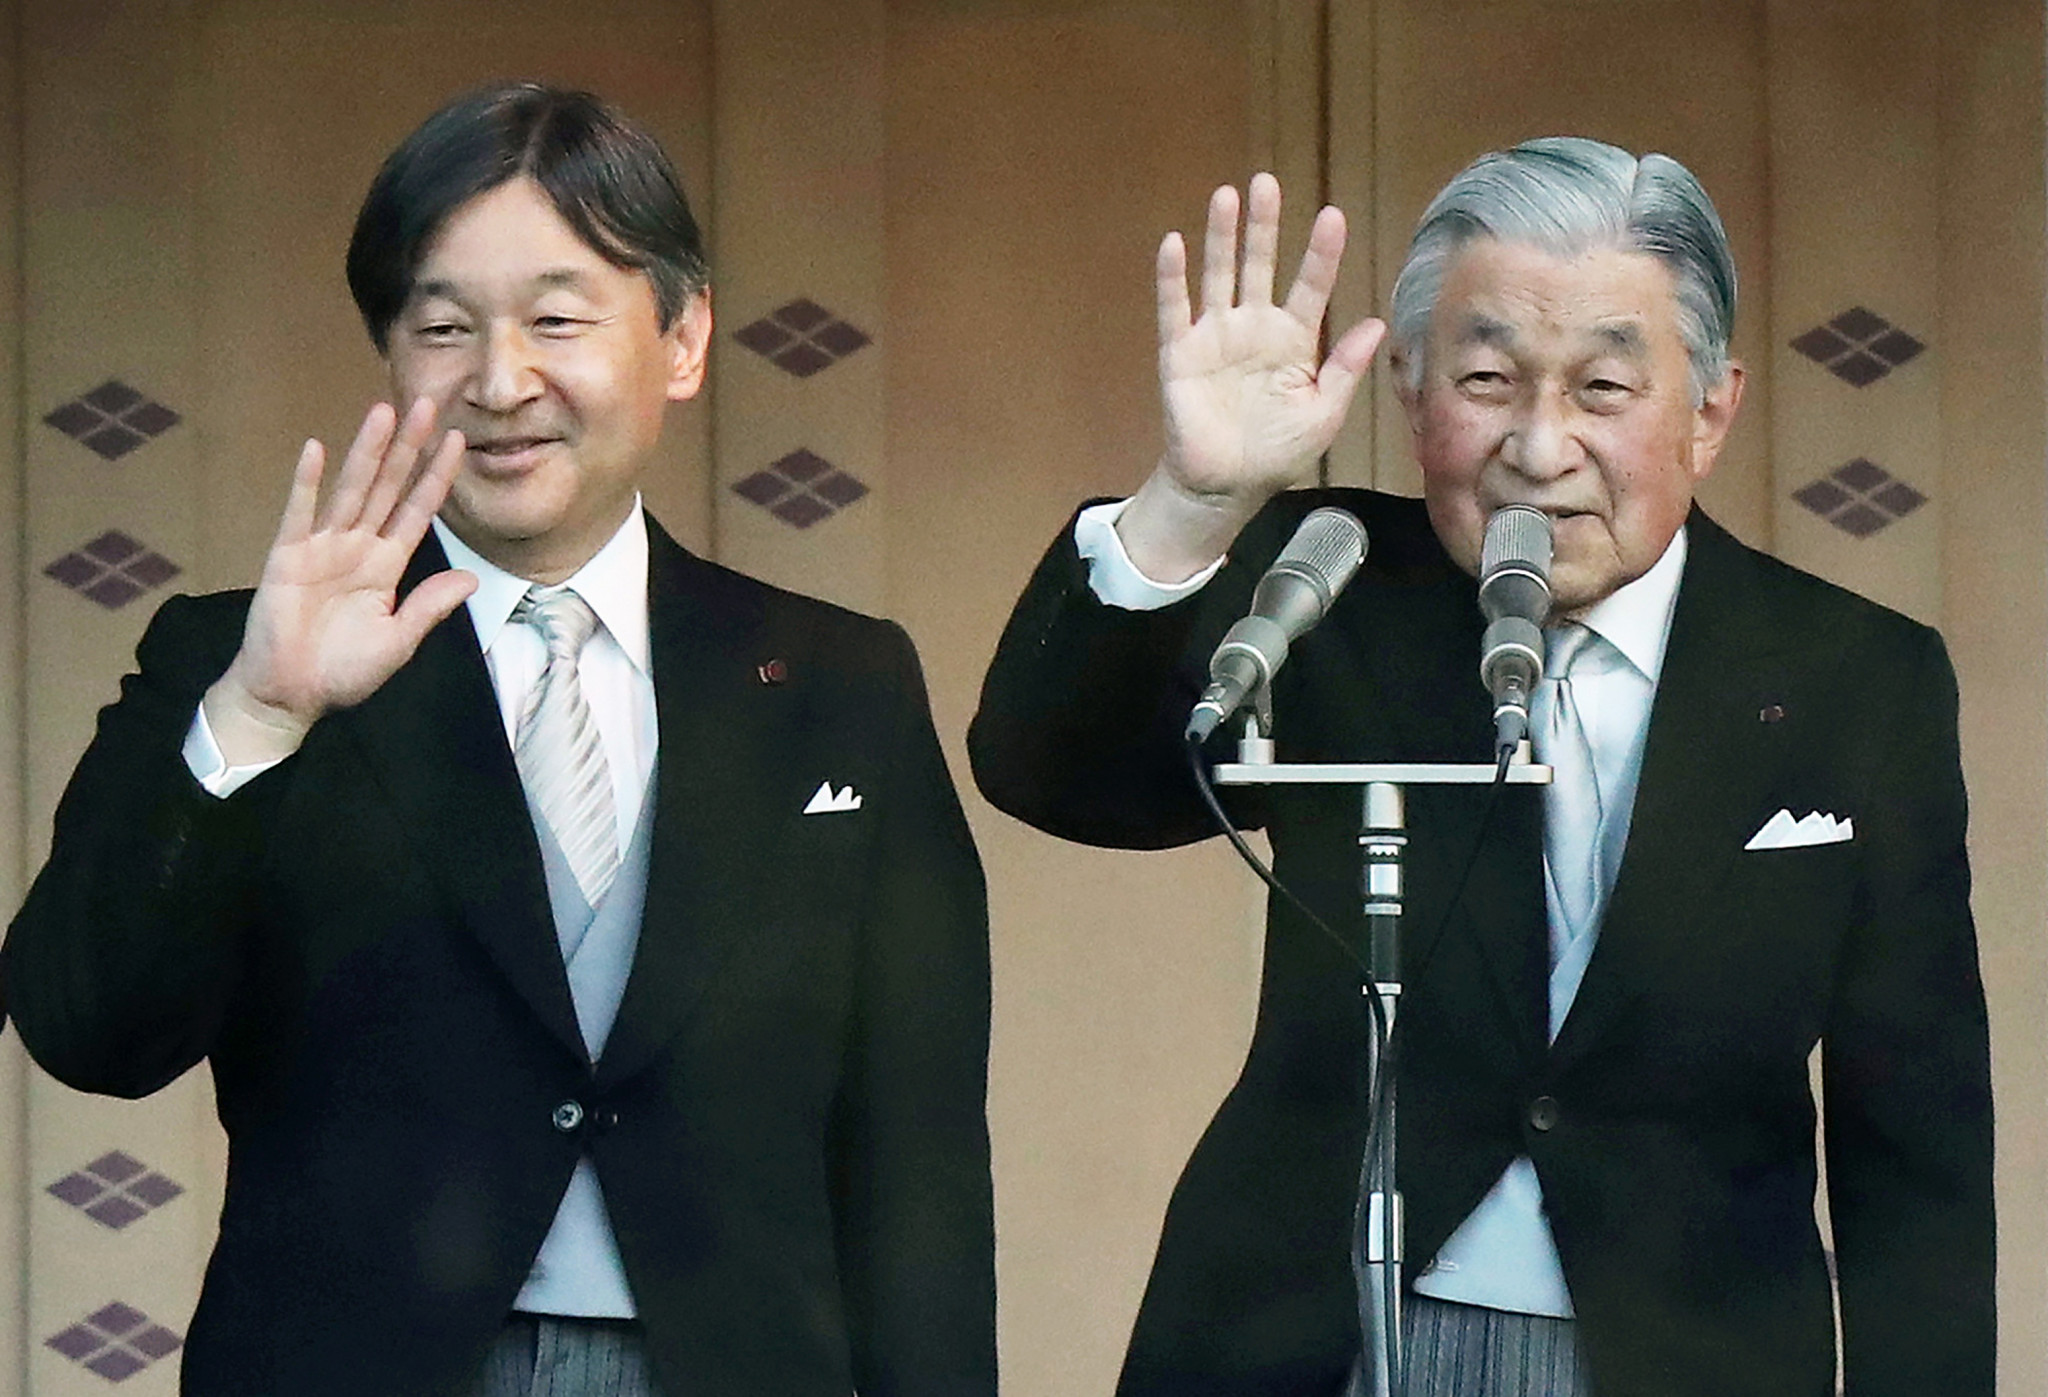 Crown Prince Naruhito will succeed Emperor Akihito on May 1 ©Getty Images